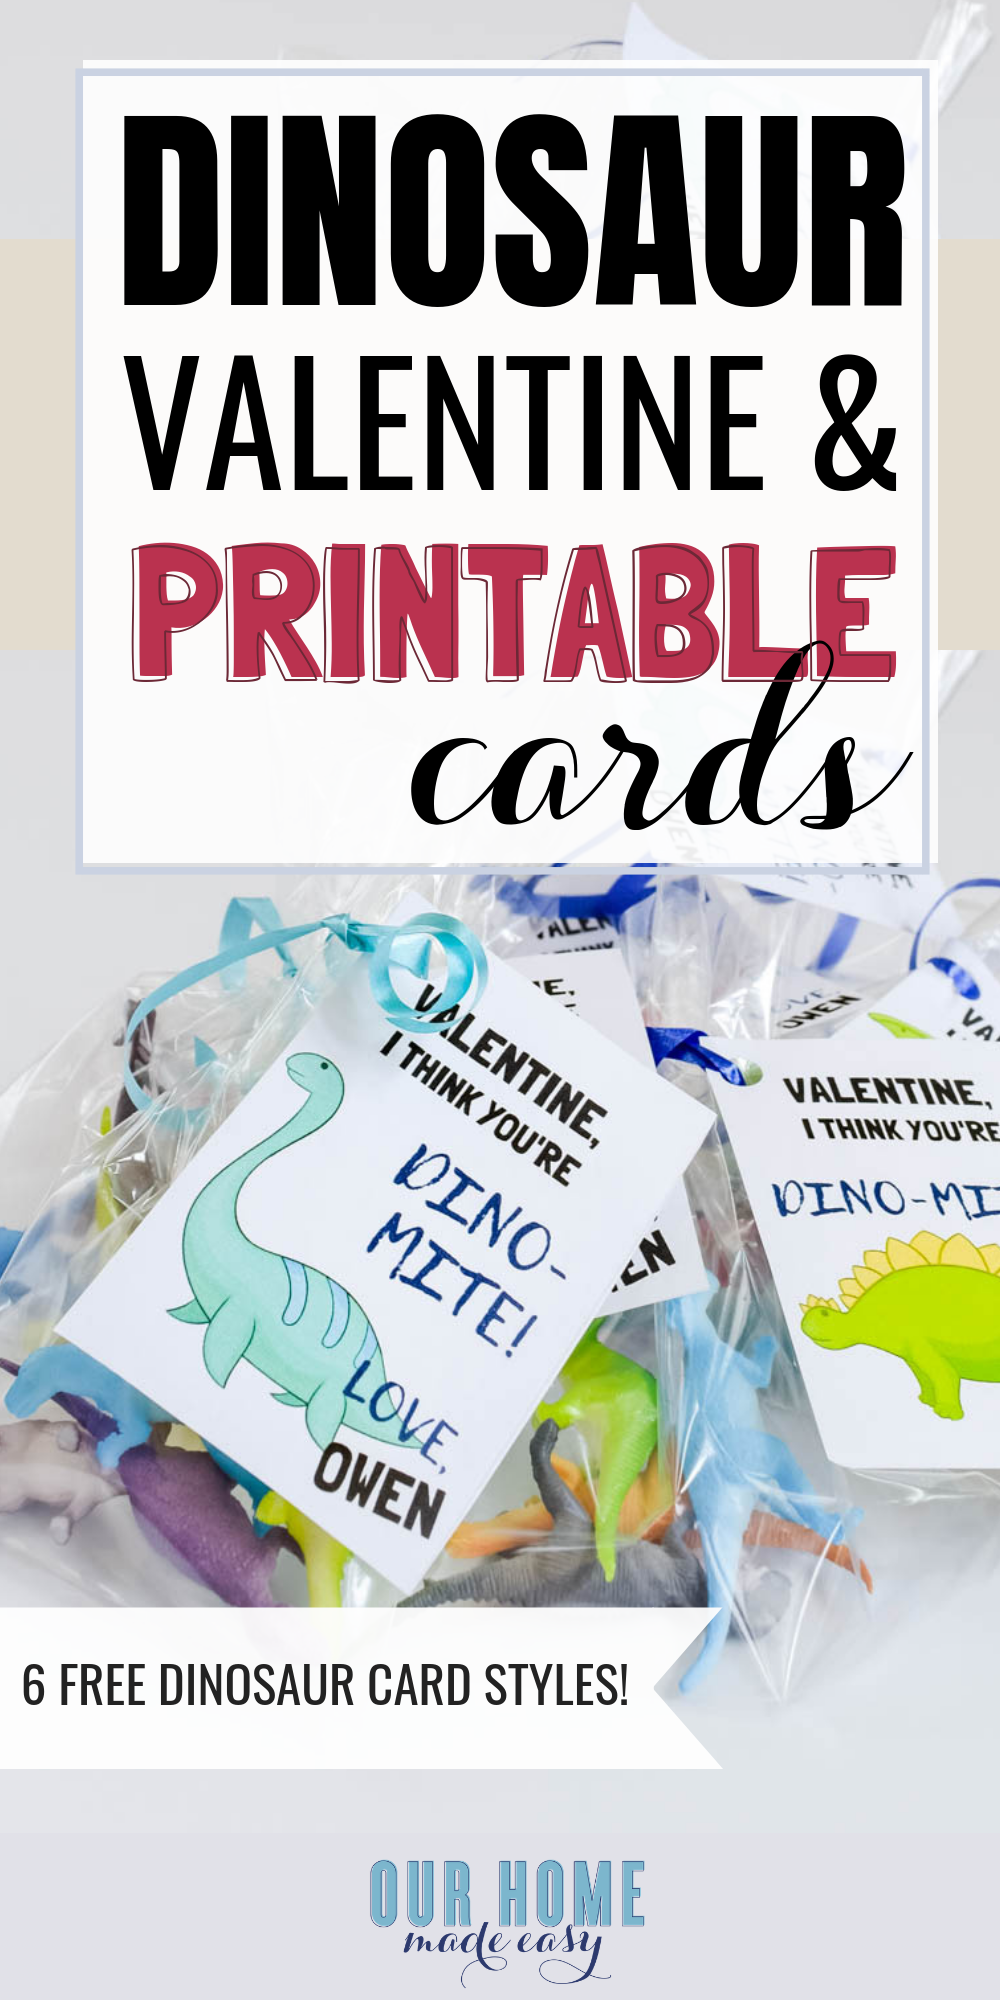 DIY Dinosaur Valentines Cards with this free printable! Download it and make your own fun valentines for school for kids! #valentinesday #valentinesdayschool #valentinesdaycard #ourhomemadeeasy